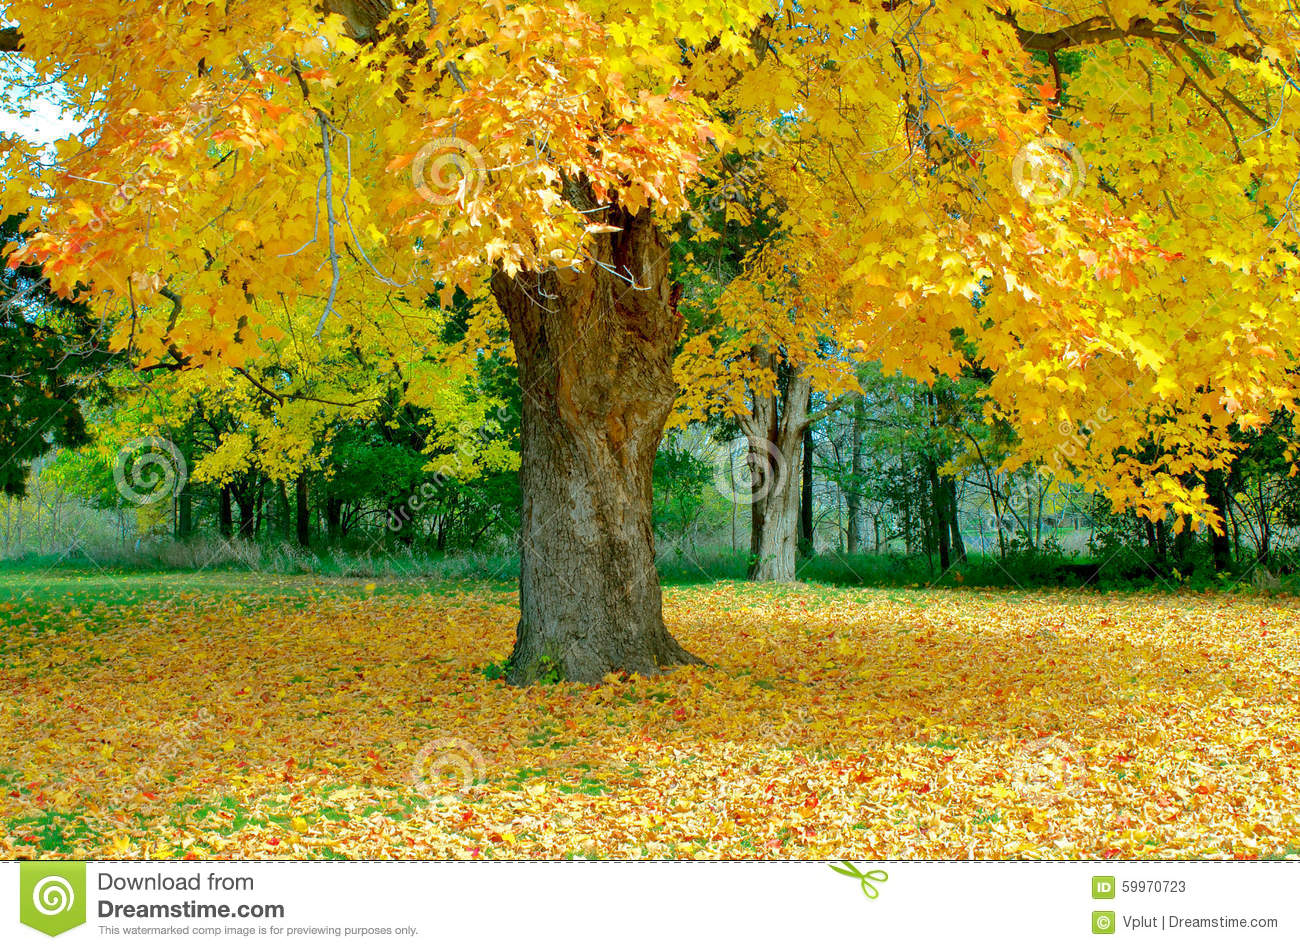 Maple Tree Shedding Leaves In Autumn Stock Image - Image of dying ...